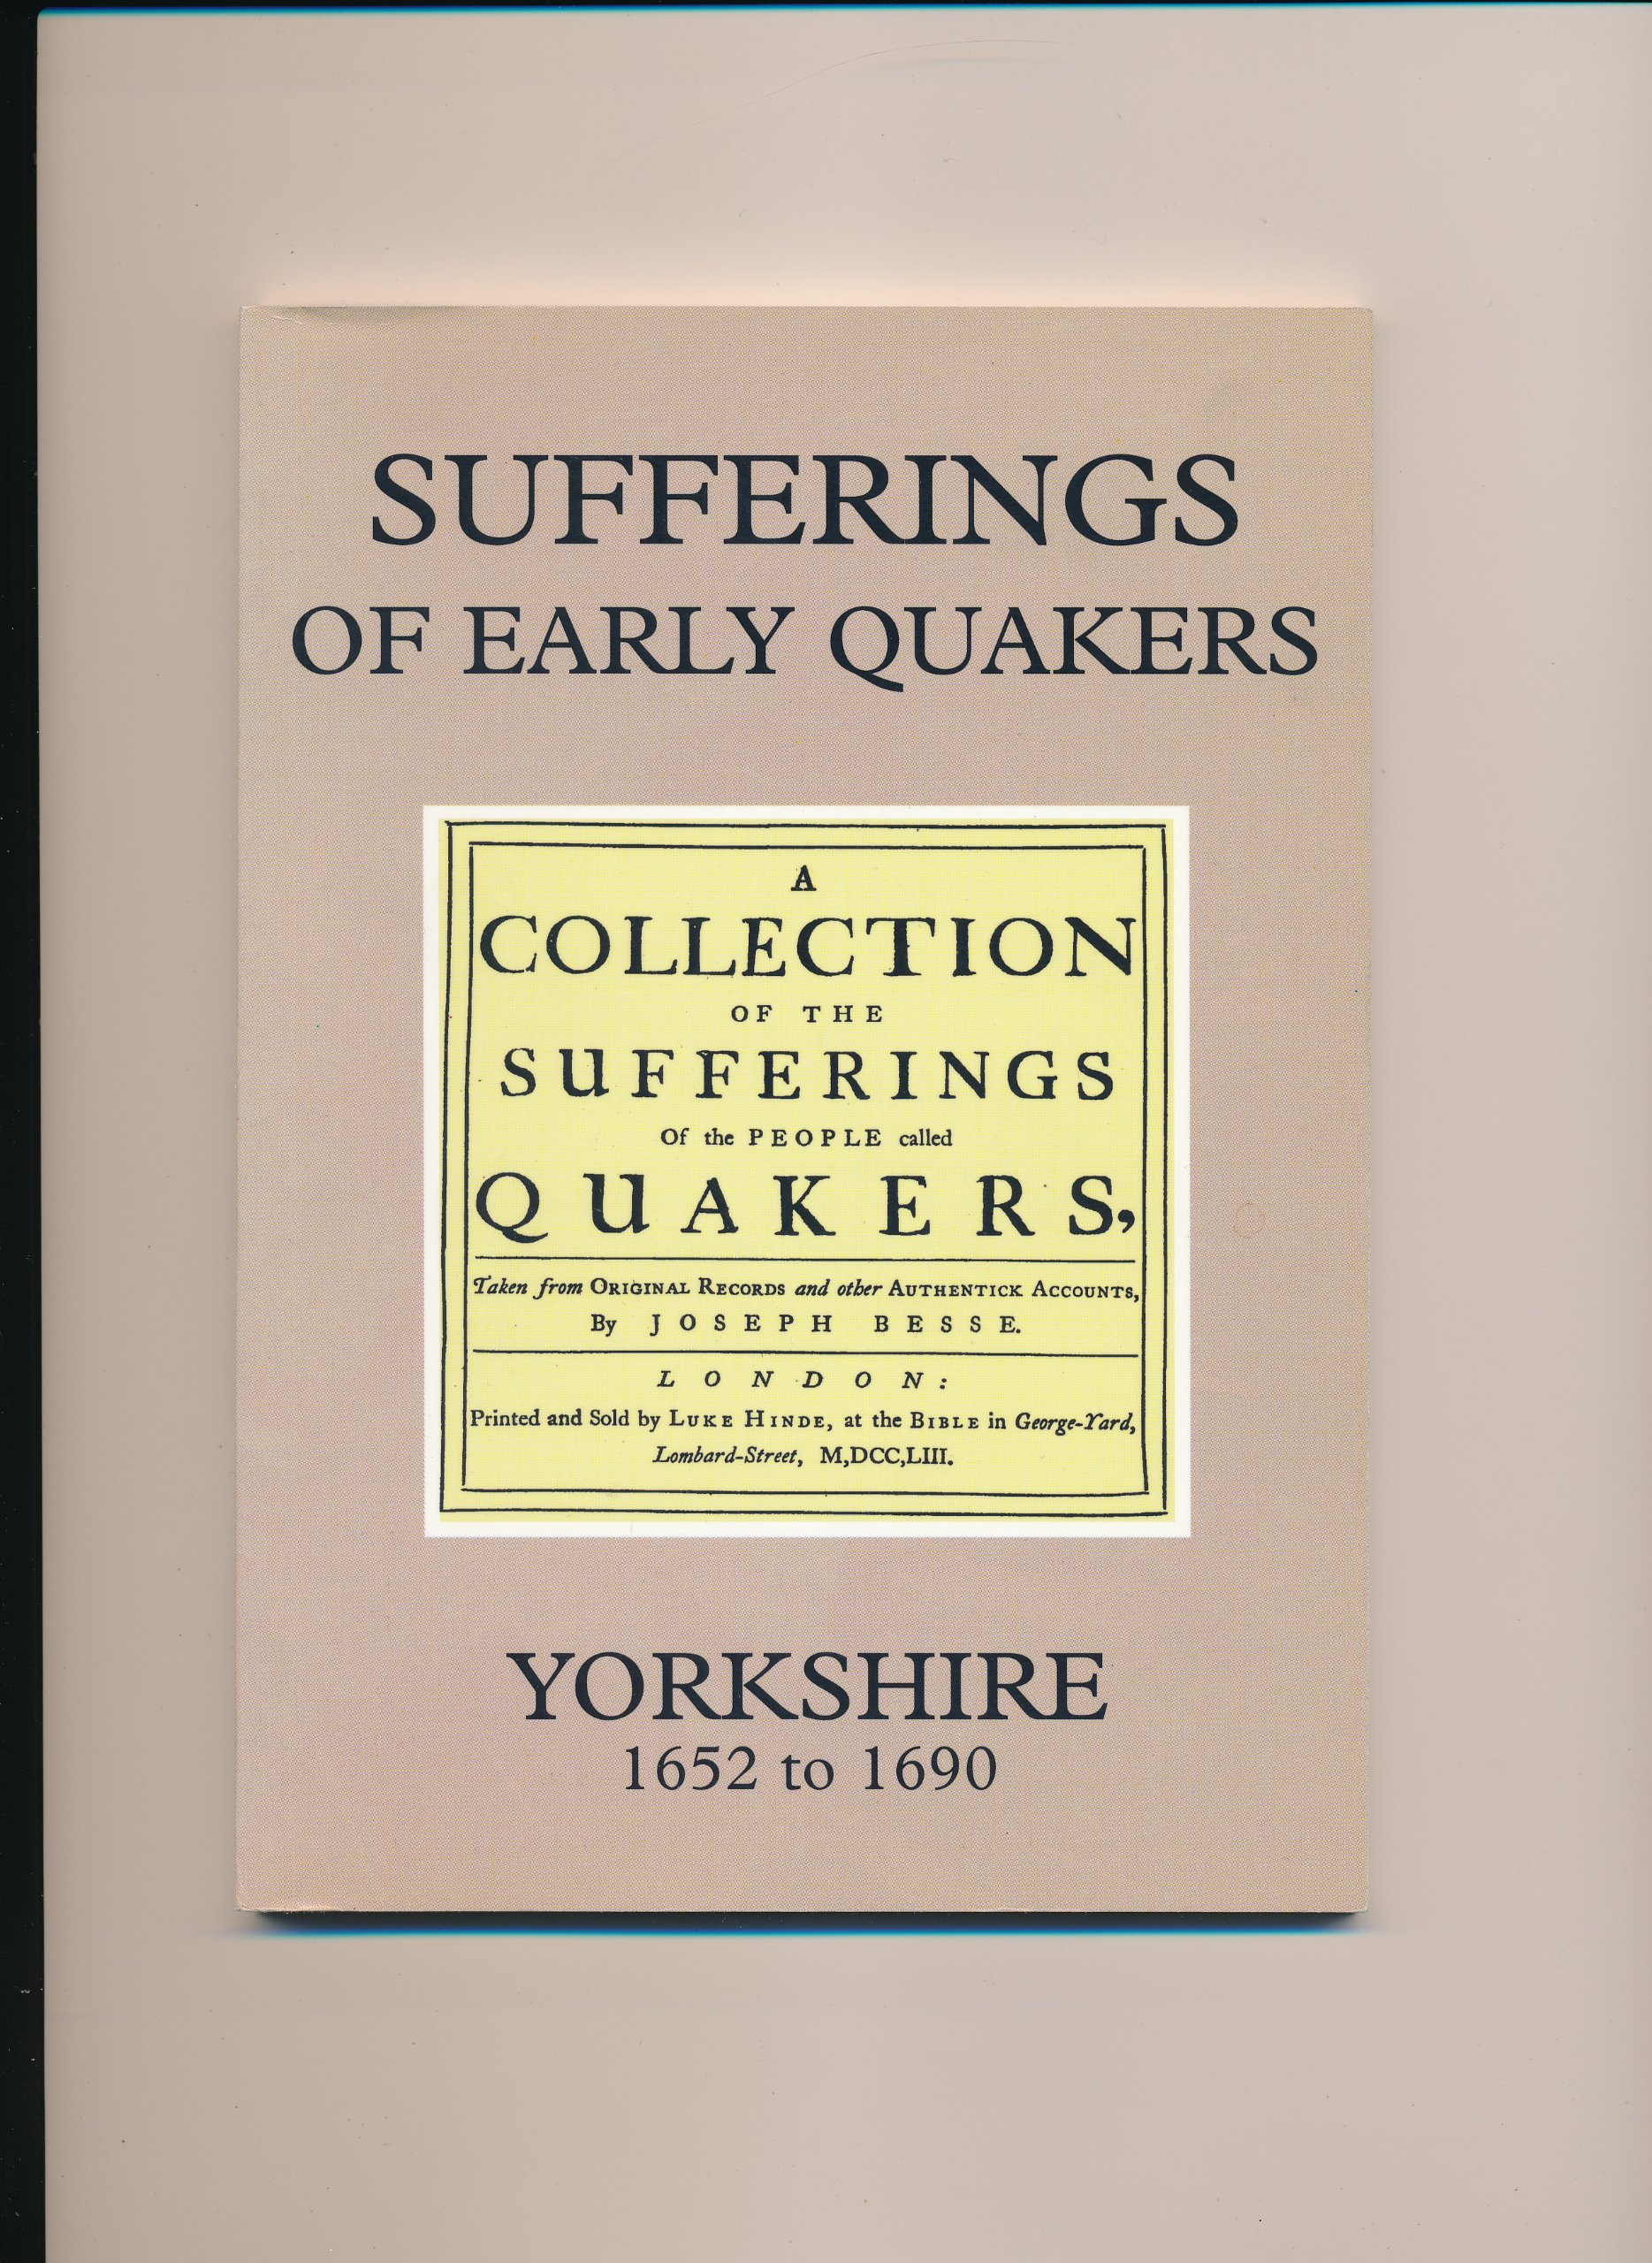 Sufferings of Early Quakers: Yorkshire 1652-1690